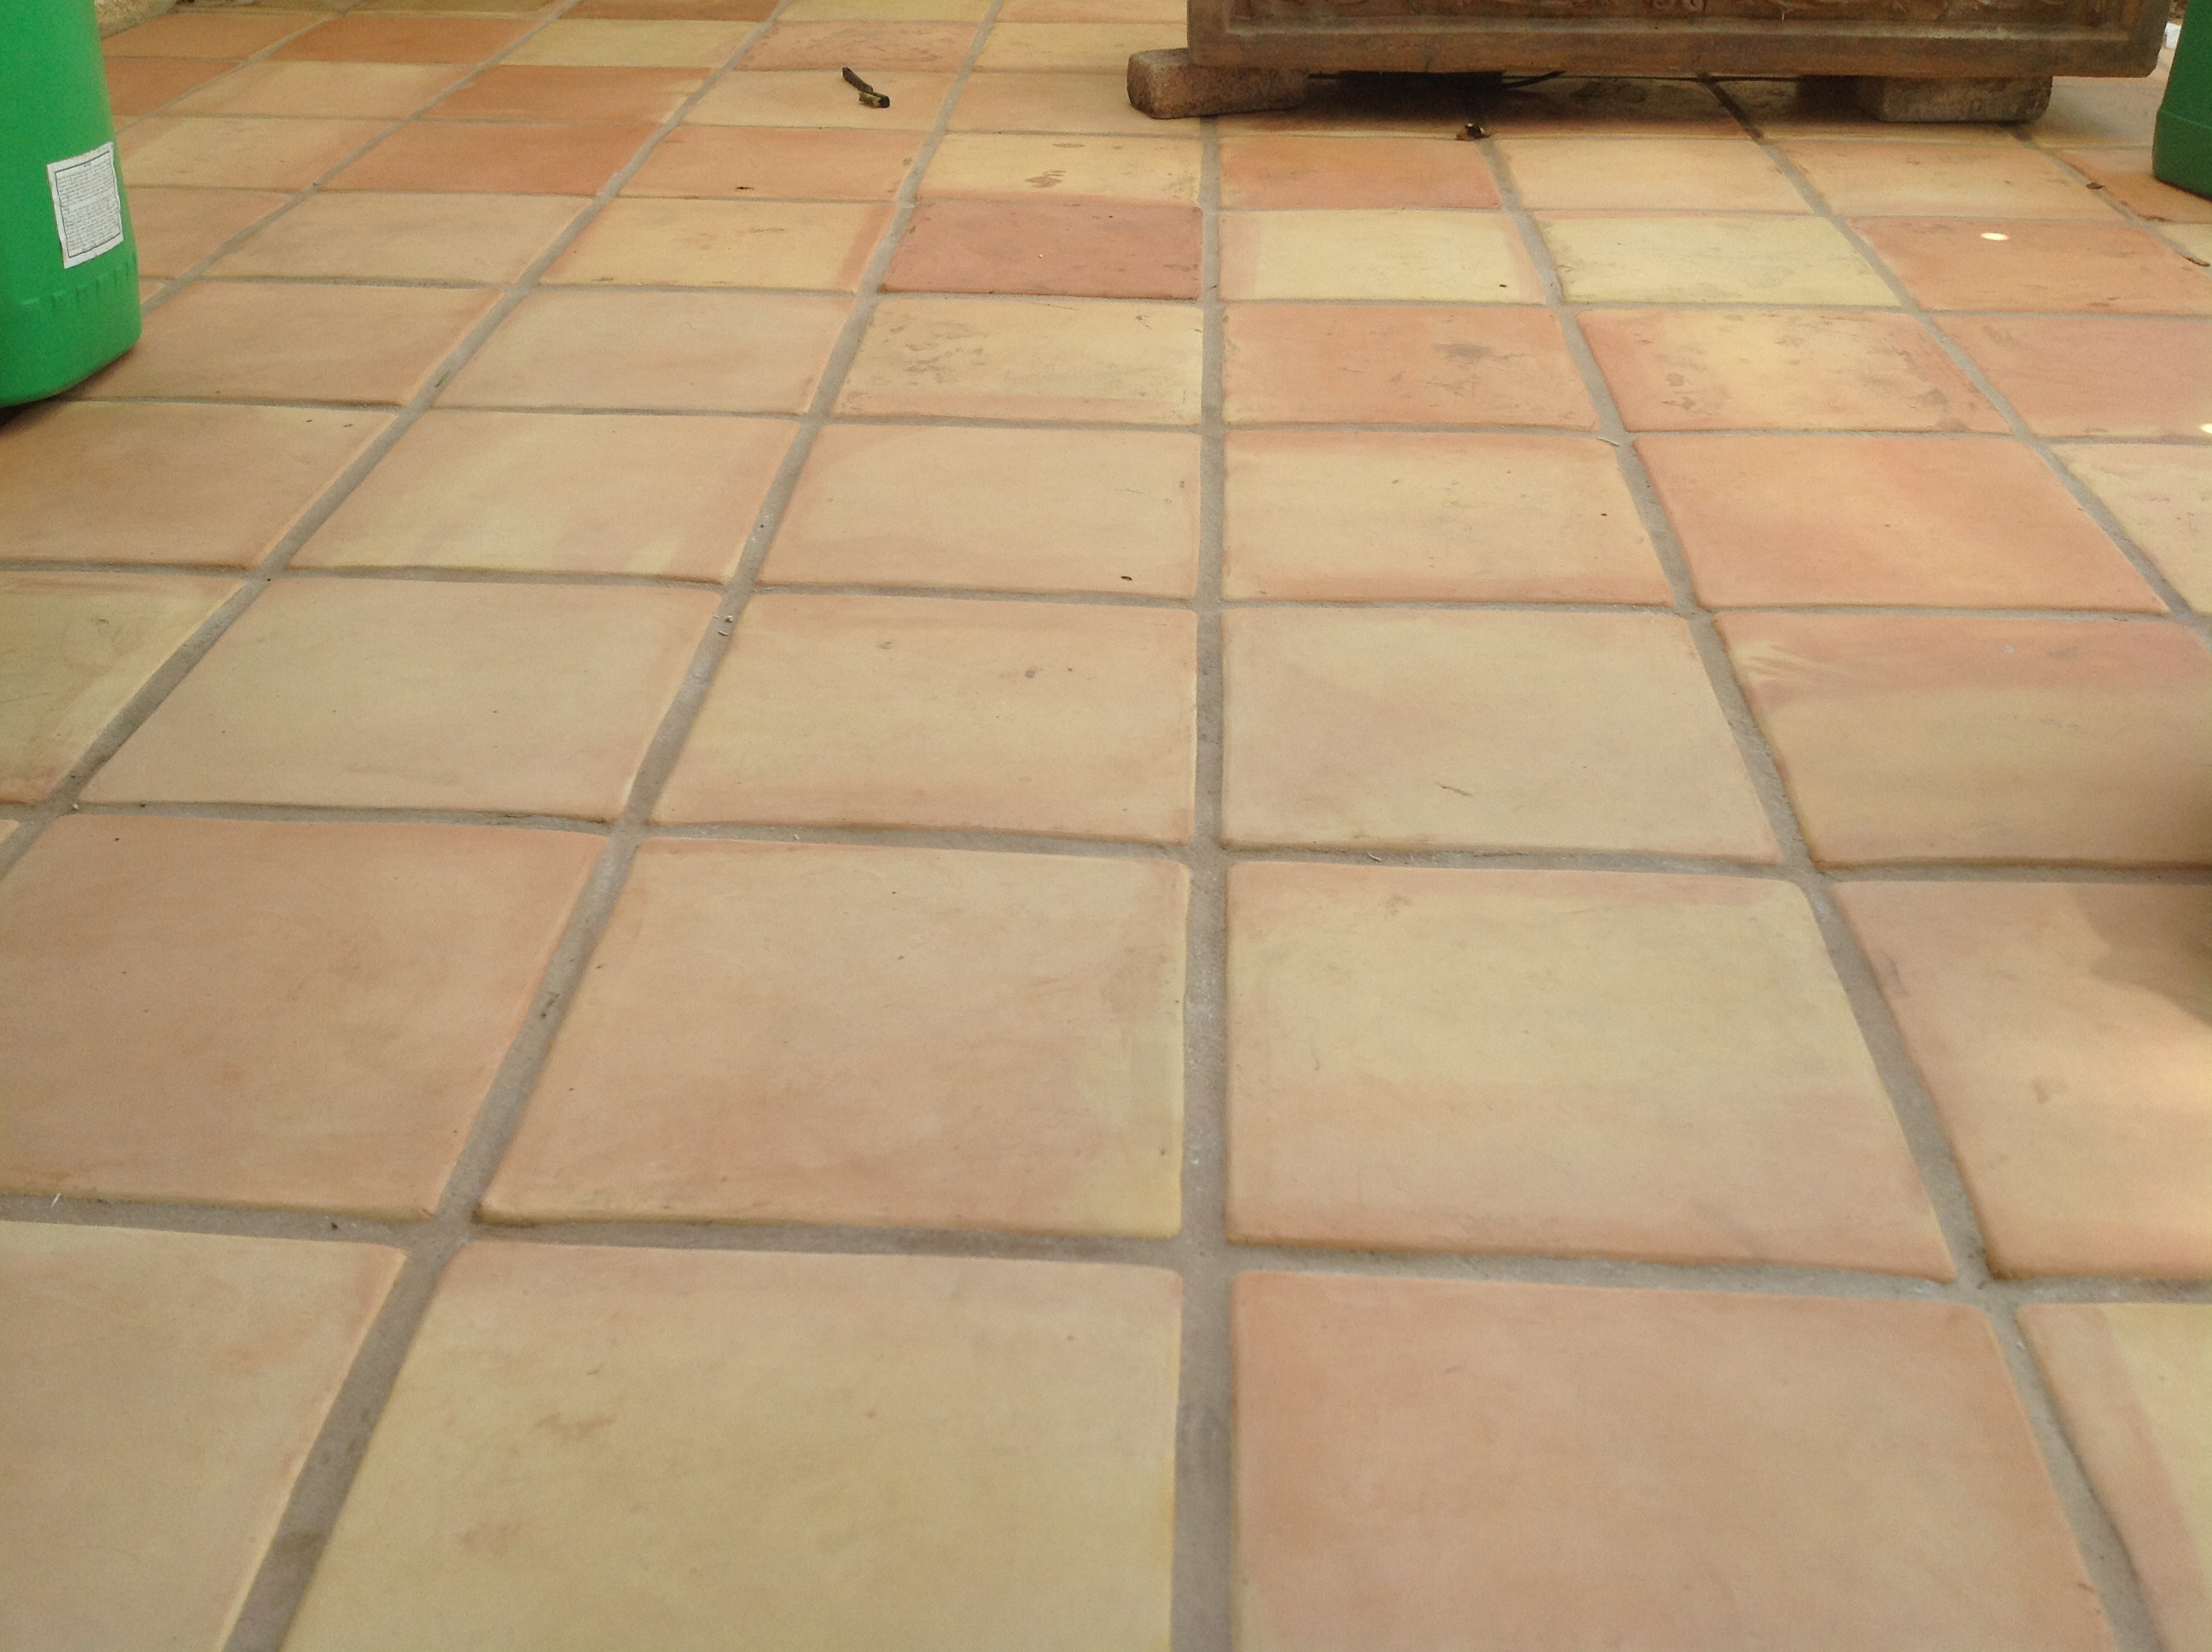 Superior saltillo tile floor refinishing restoration without messy machines - Tile flooring ...